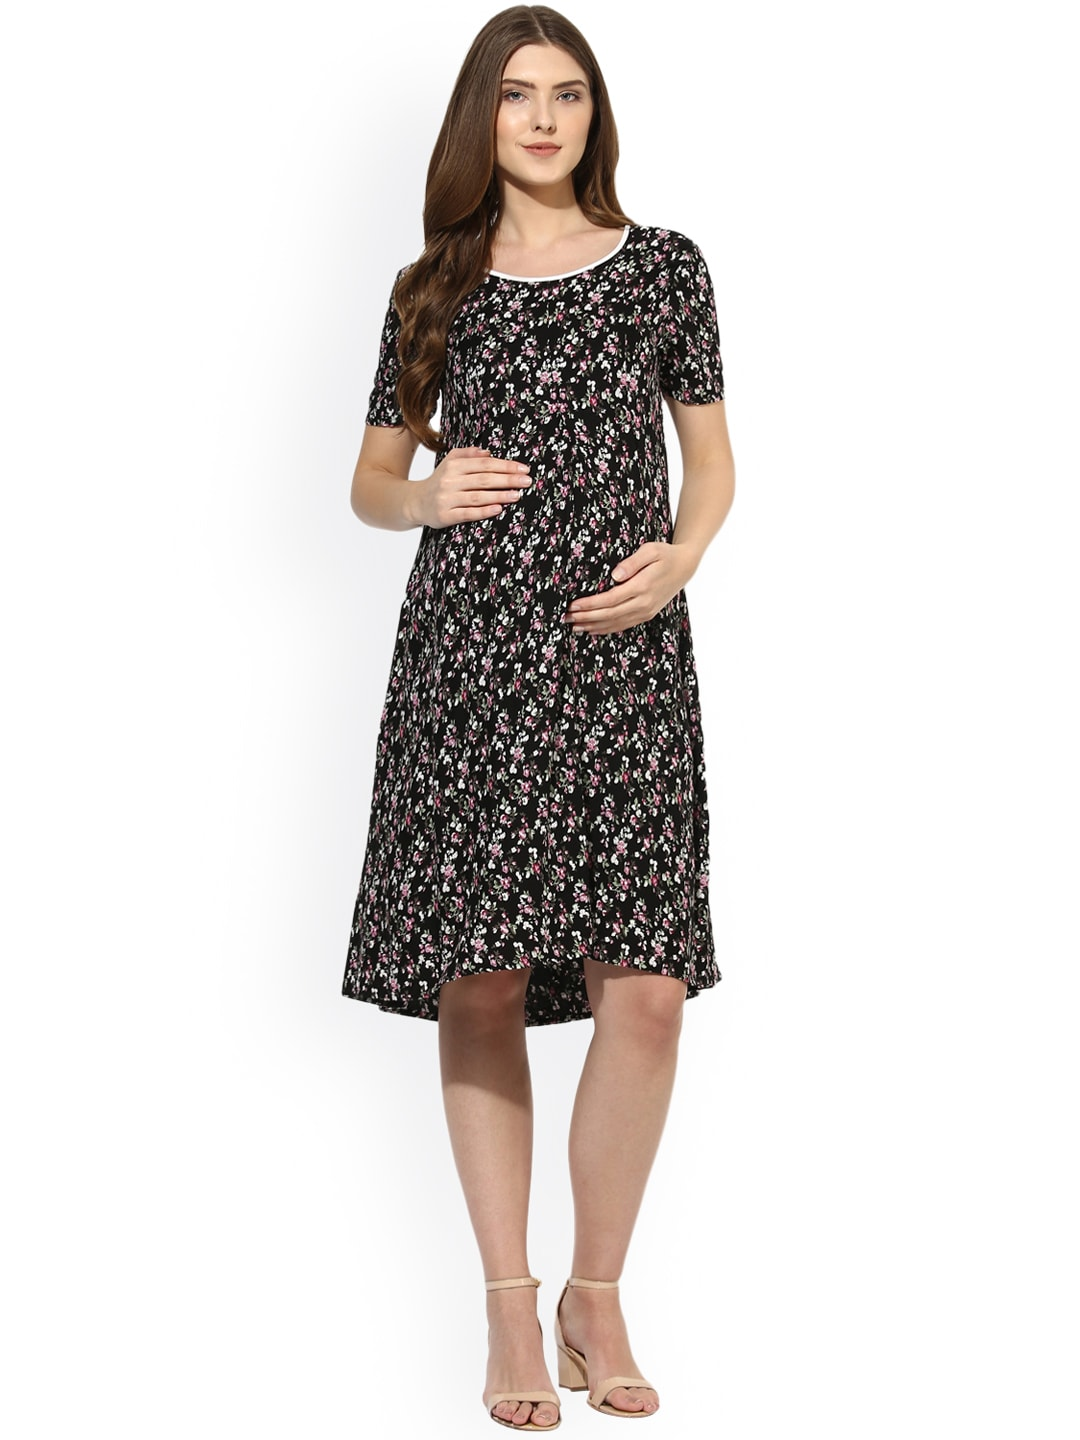 Buy maternity dress gallery braidsmaid dress cocktail dress and maternity dresses buy maternity dresses online in india ombrellifo gallery ombrellifo Gallery